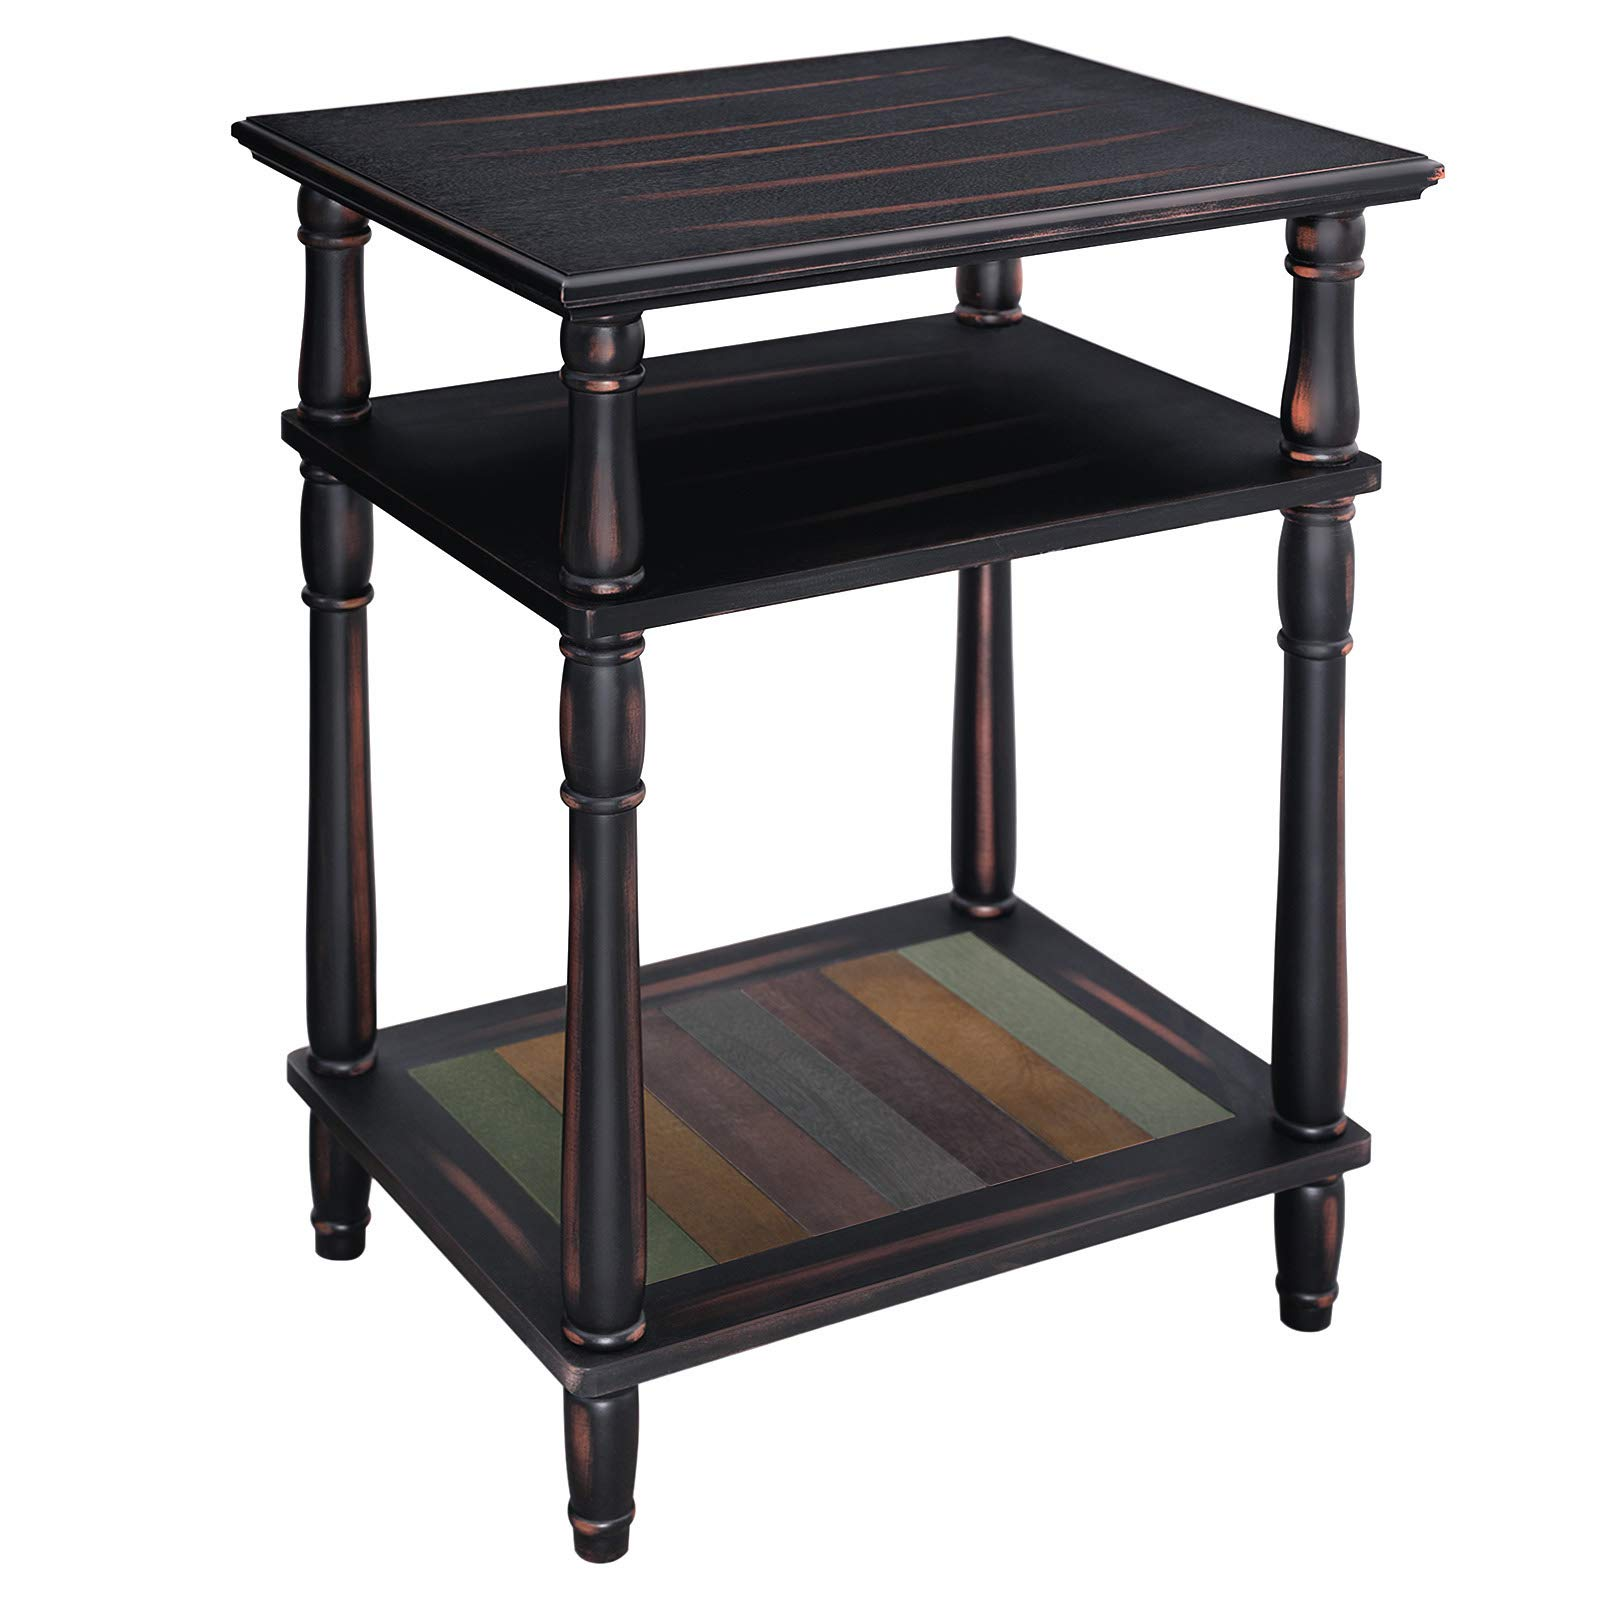 VASAGLE End Table, 3-Tier Telephone Table with Colorful Storage Shelf, Solid Wood Legs, No Tools Required, Sofa Side Table for Living Room, Hallway, Country Brown ULET21GL by VASAGLE